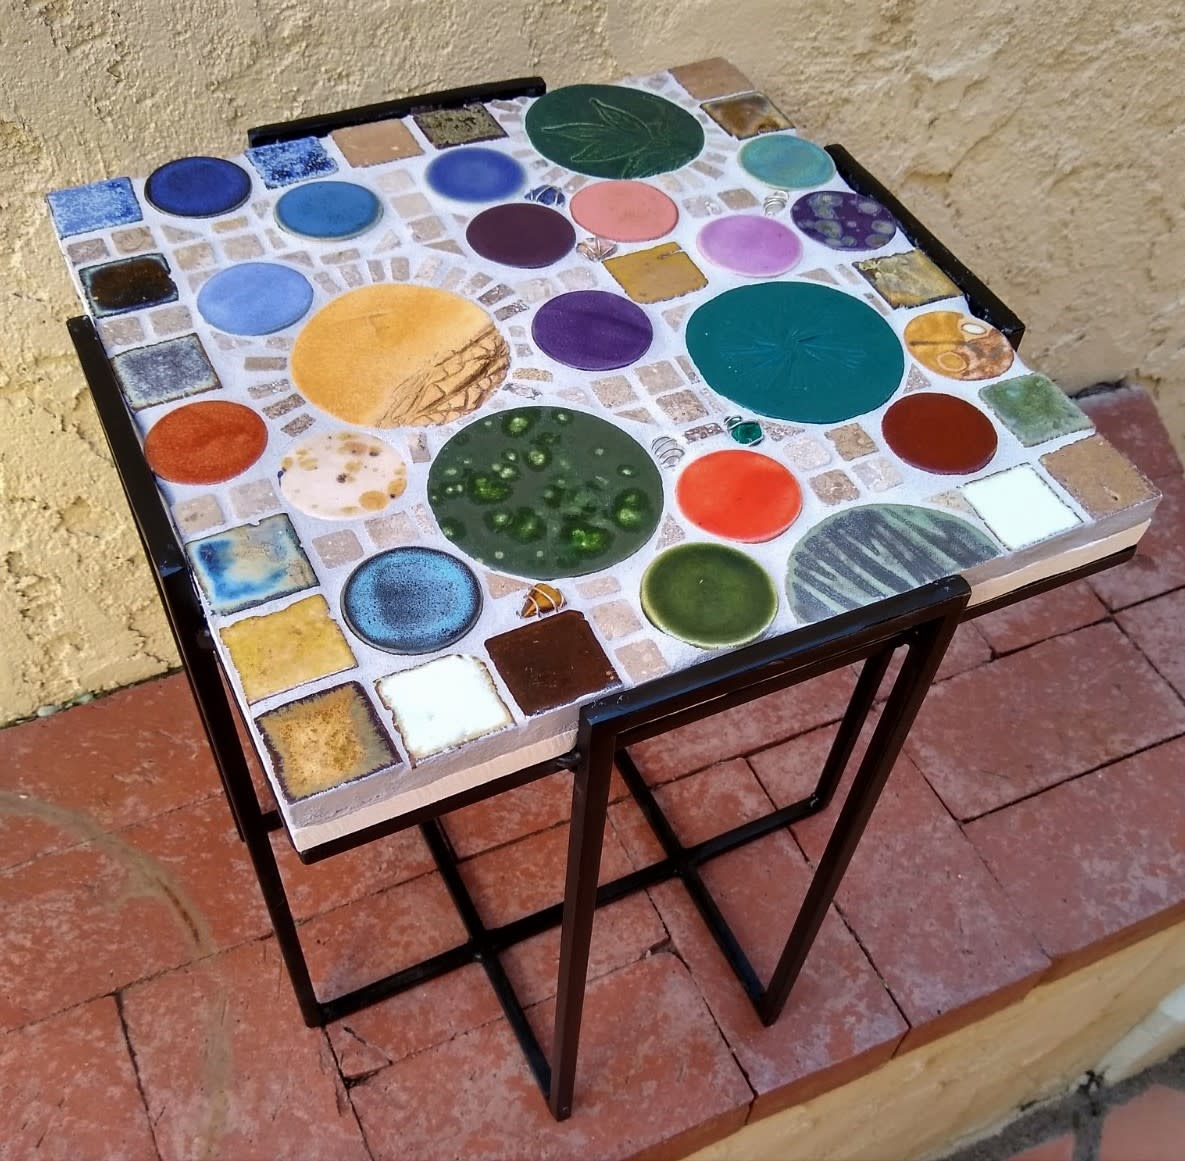 La Plaza Del Pueblo (small table)